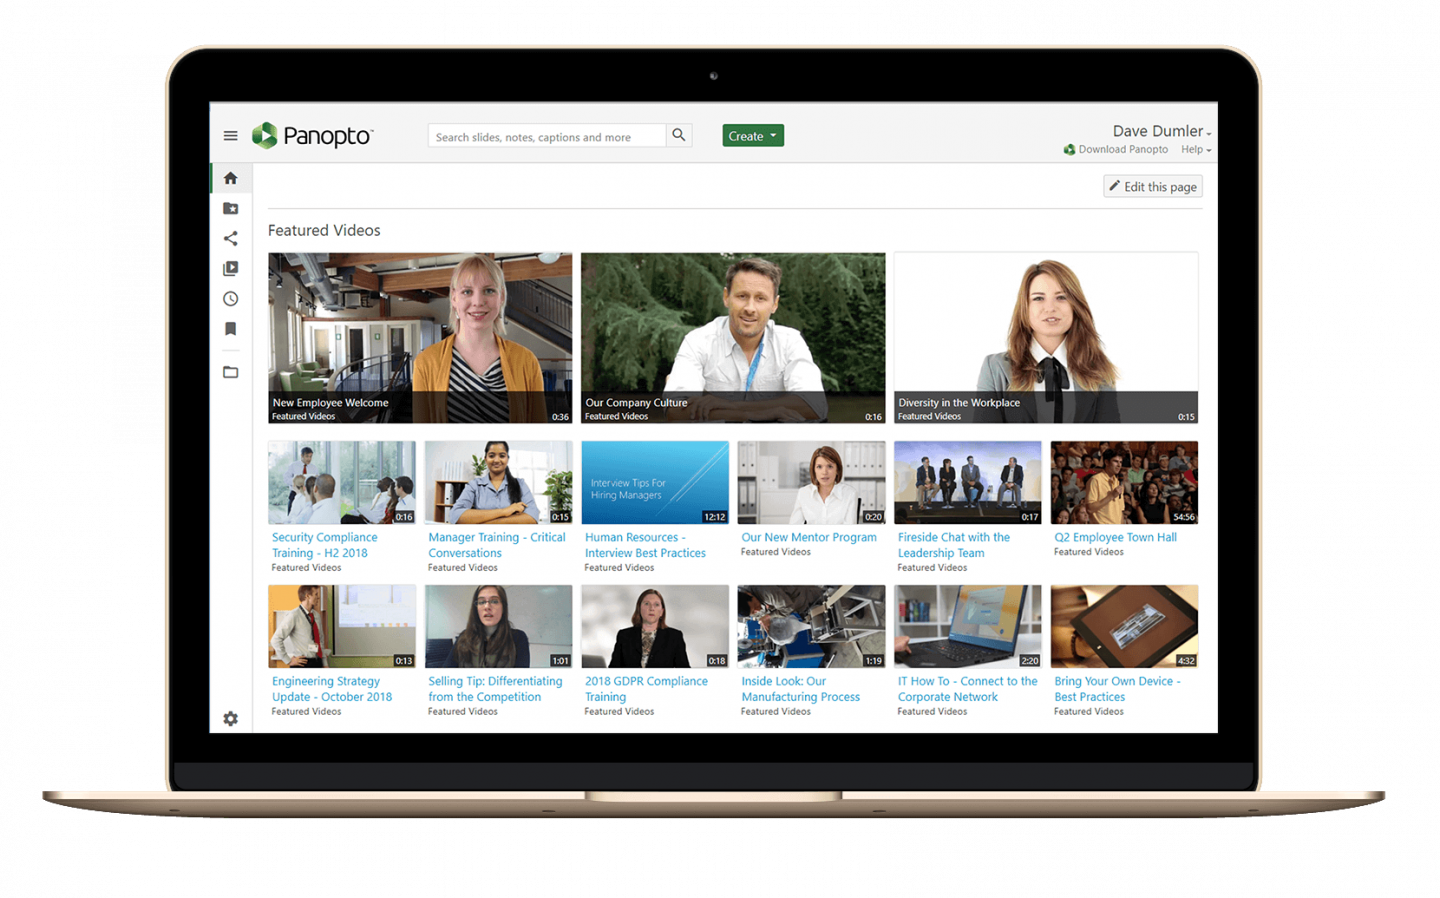 Panopto's secure video portal is a central repository for your corporate videos